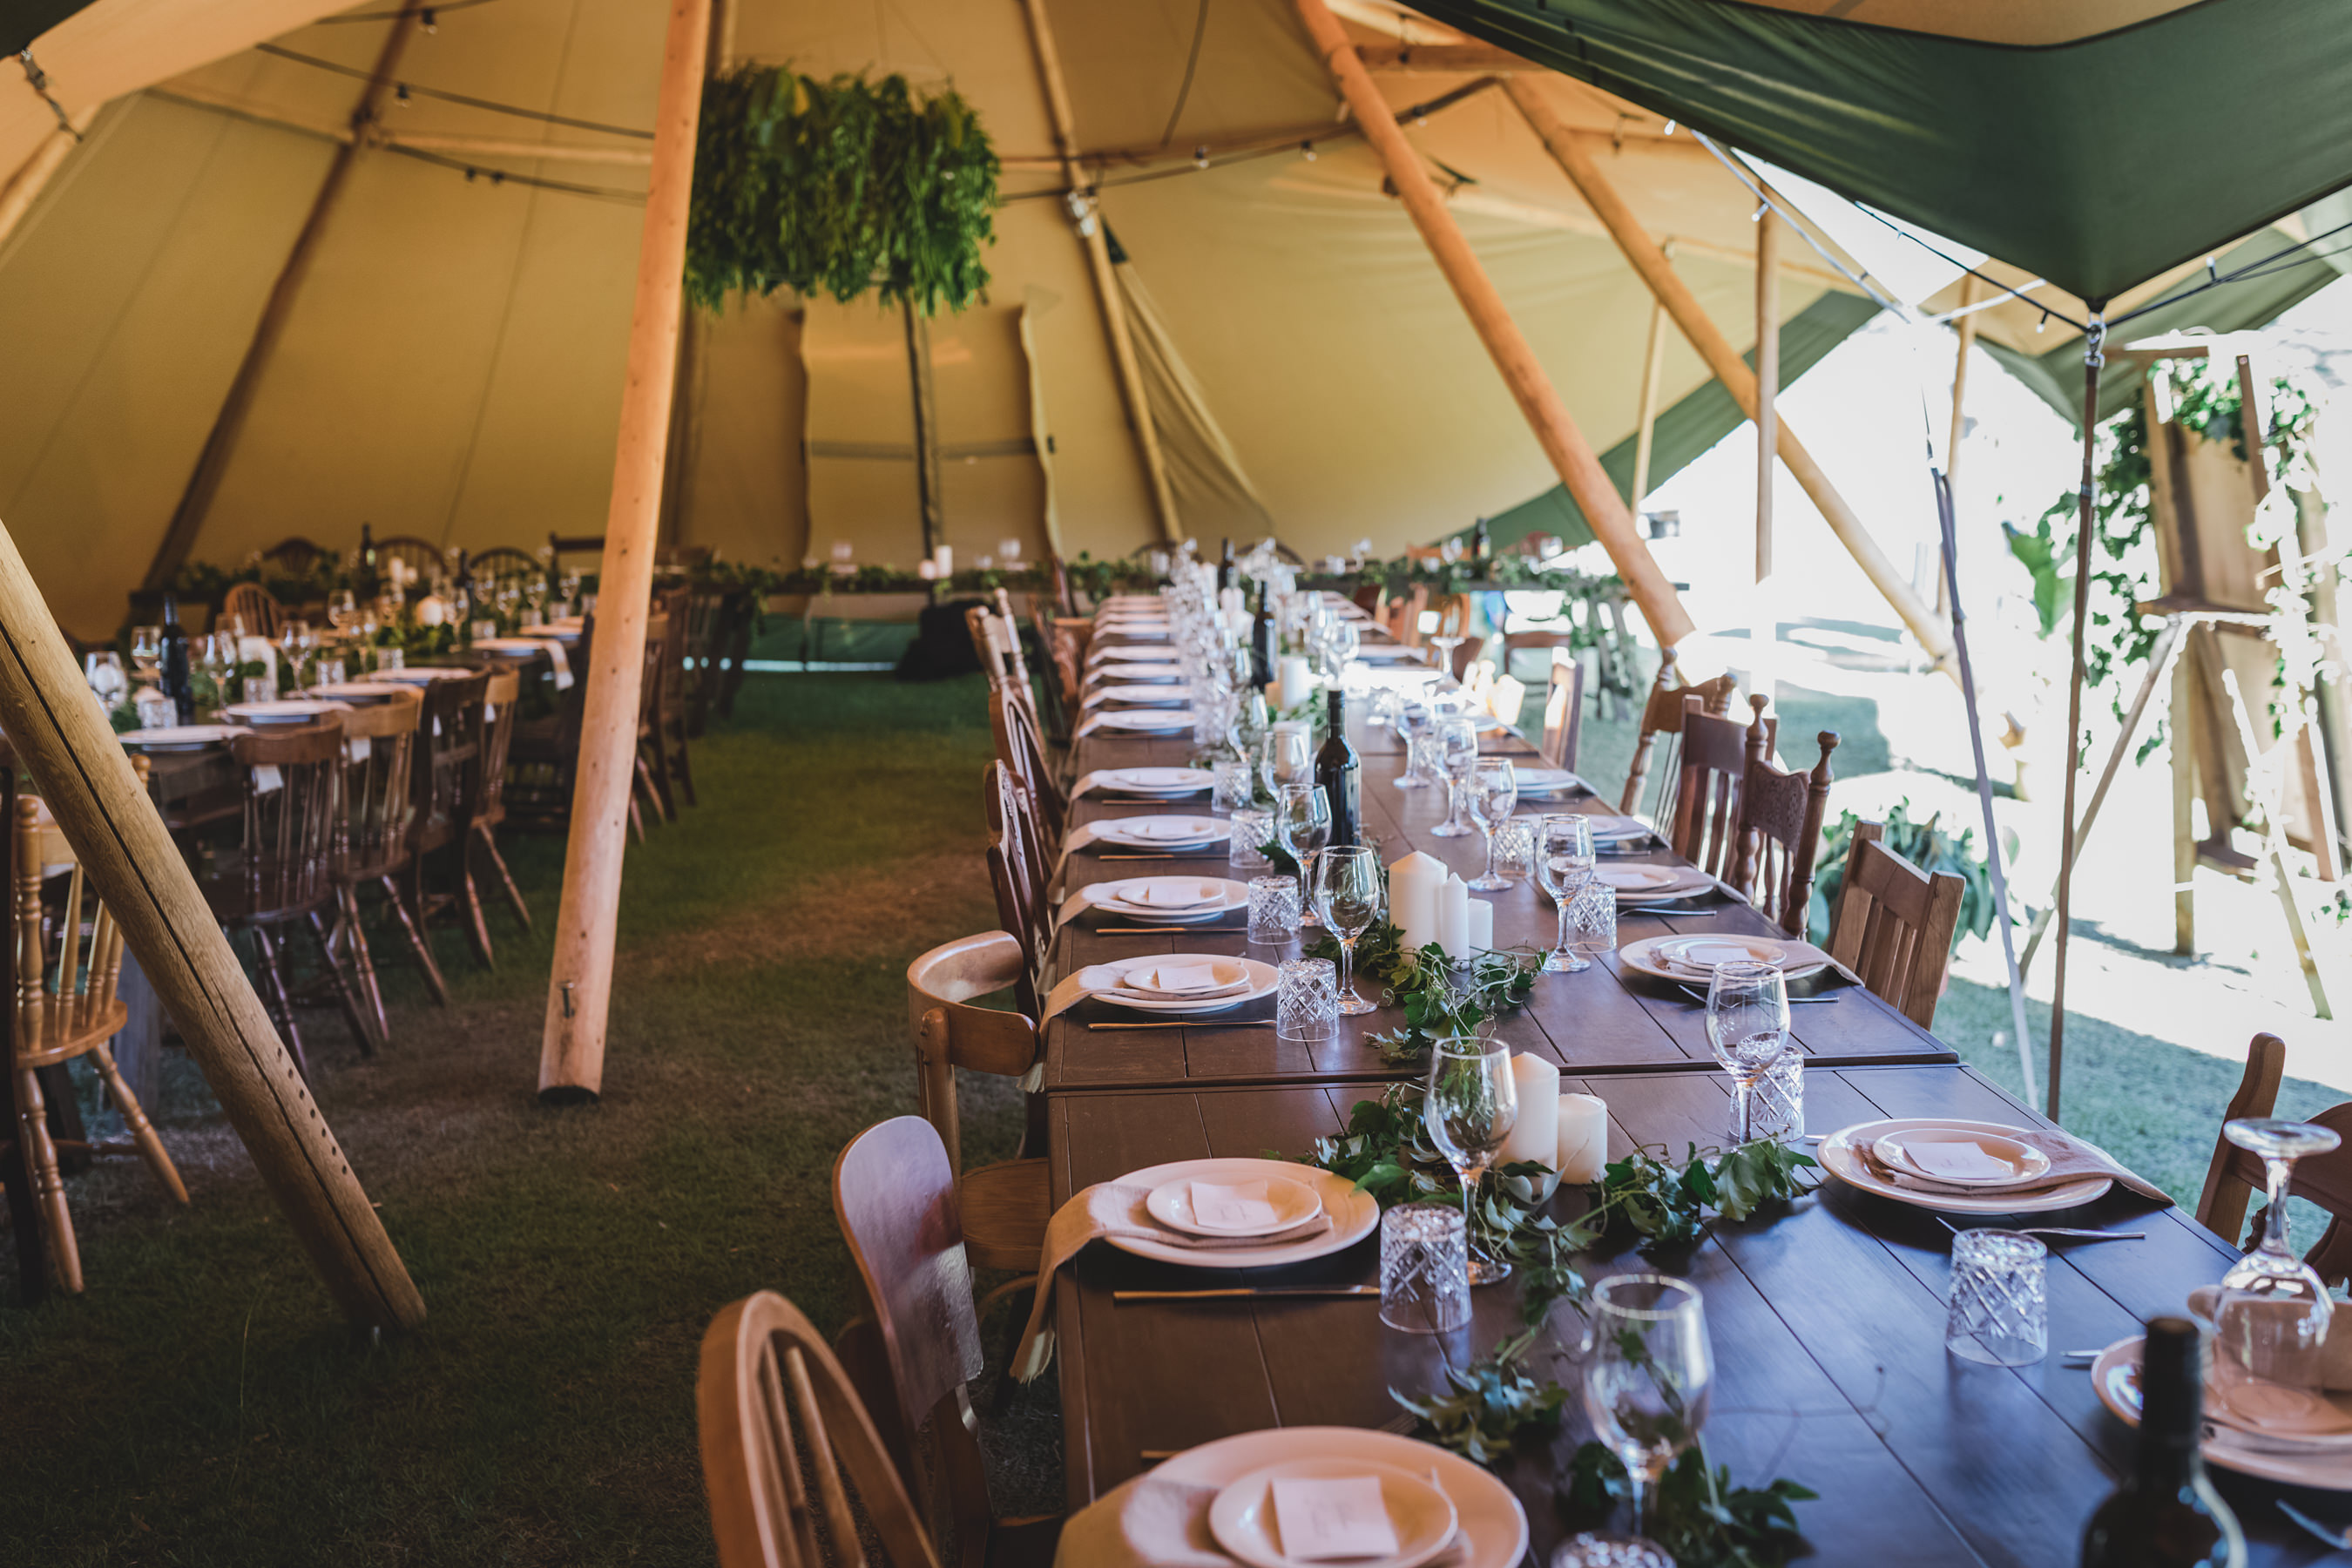 tipi wedding, large marquee hire, gold coast weddings, tipi, event hire, wedding, marquee hire, tables capes